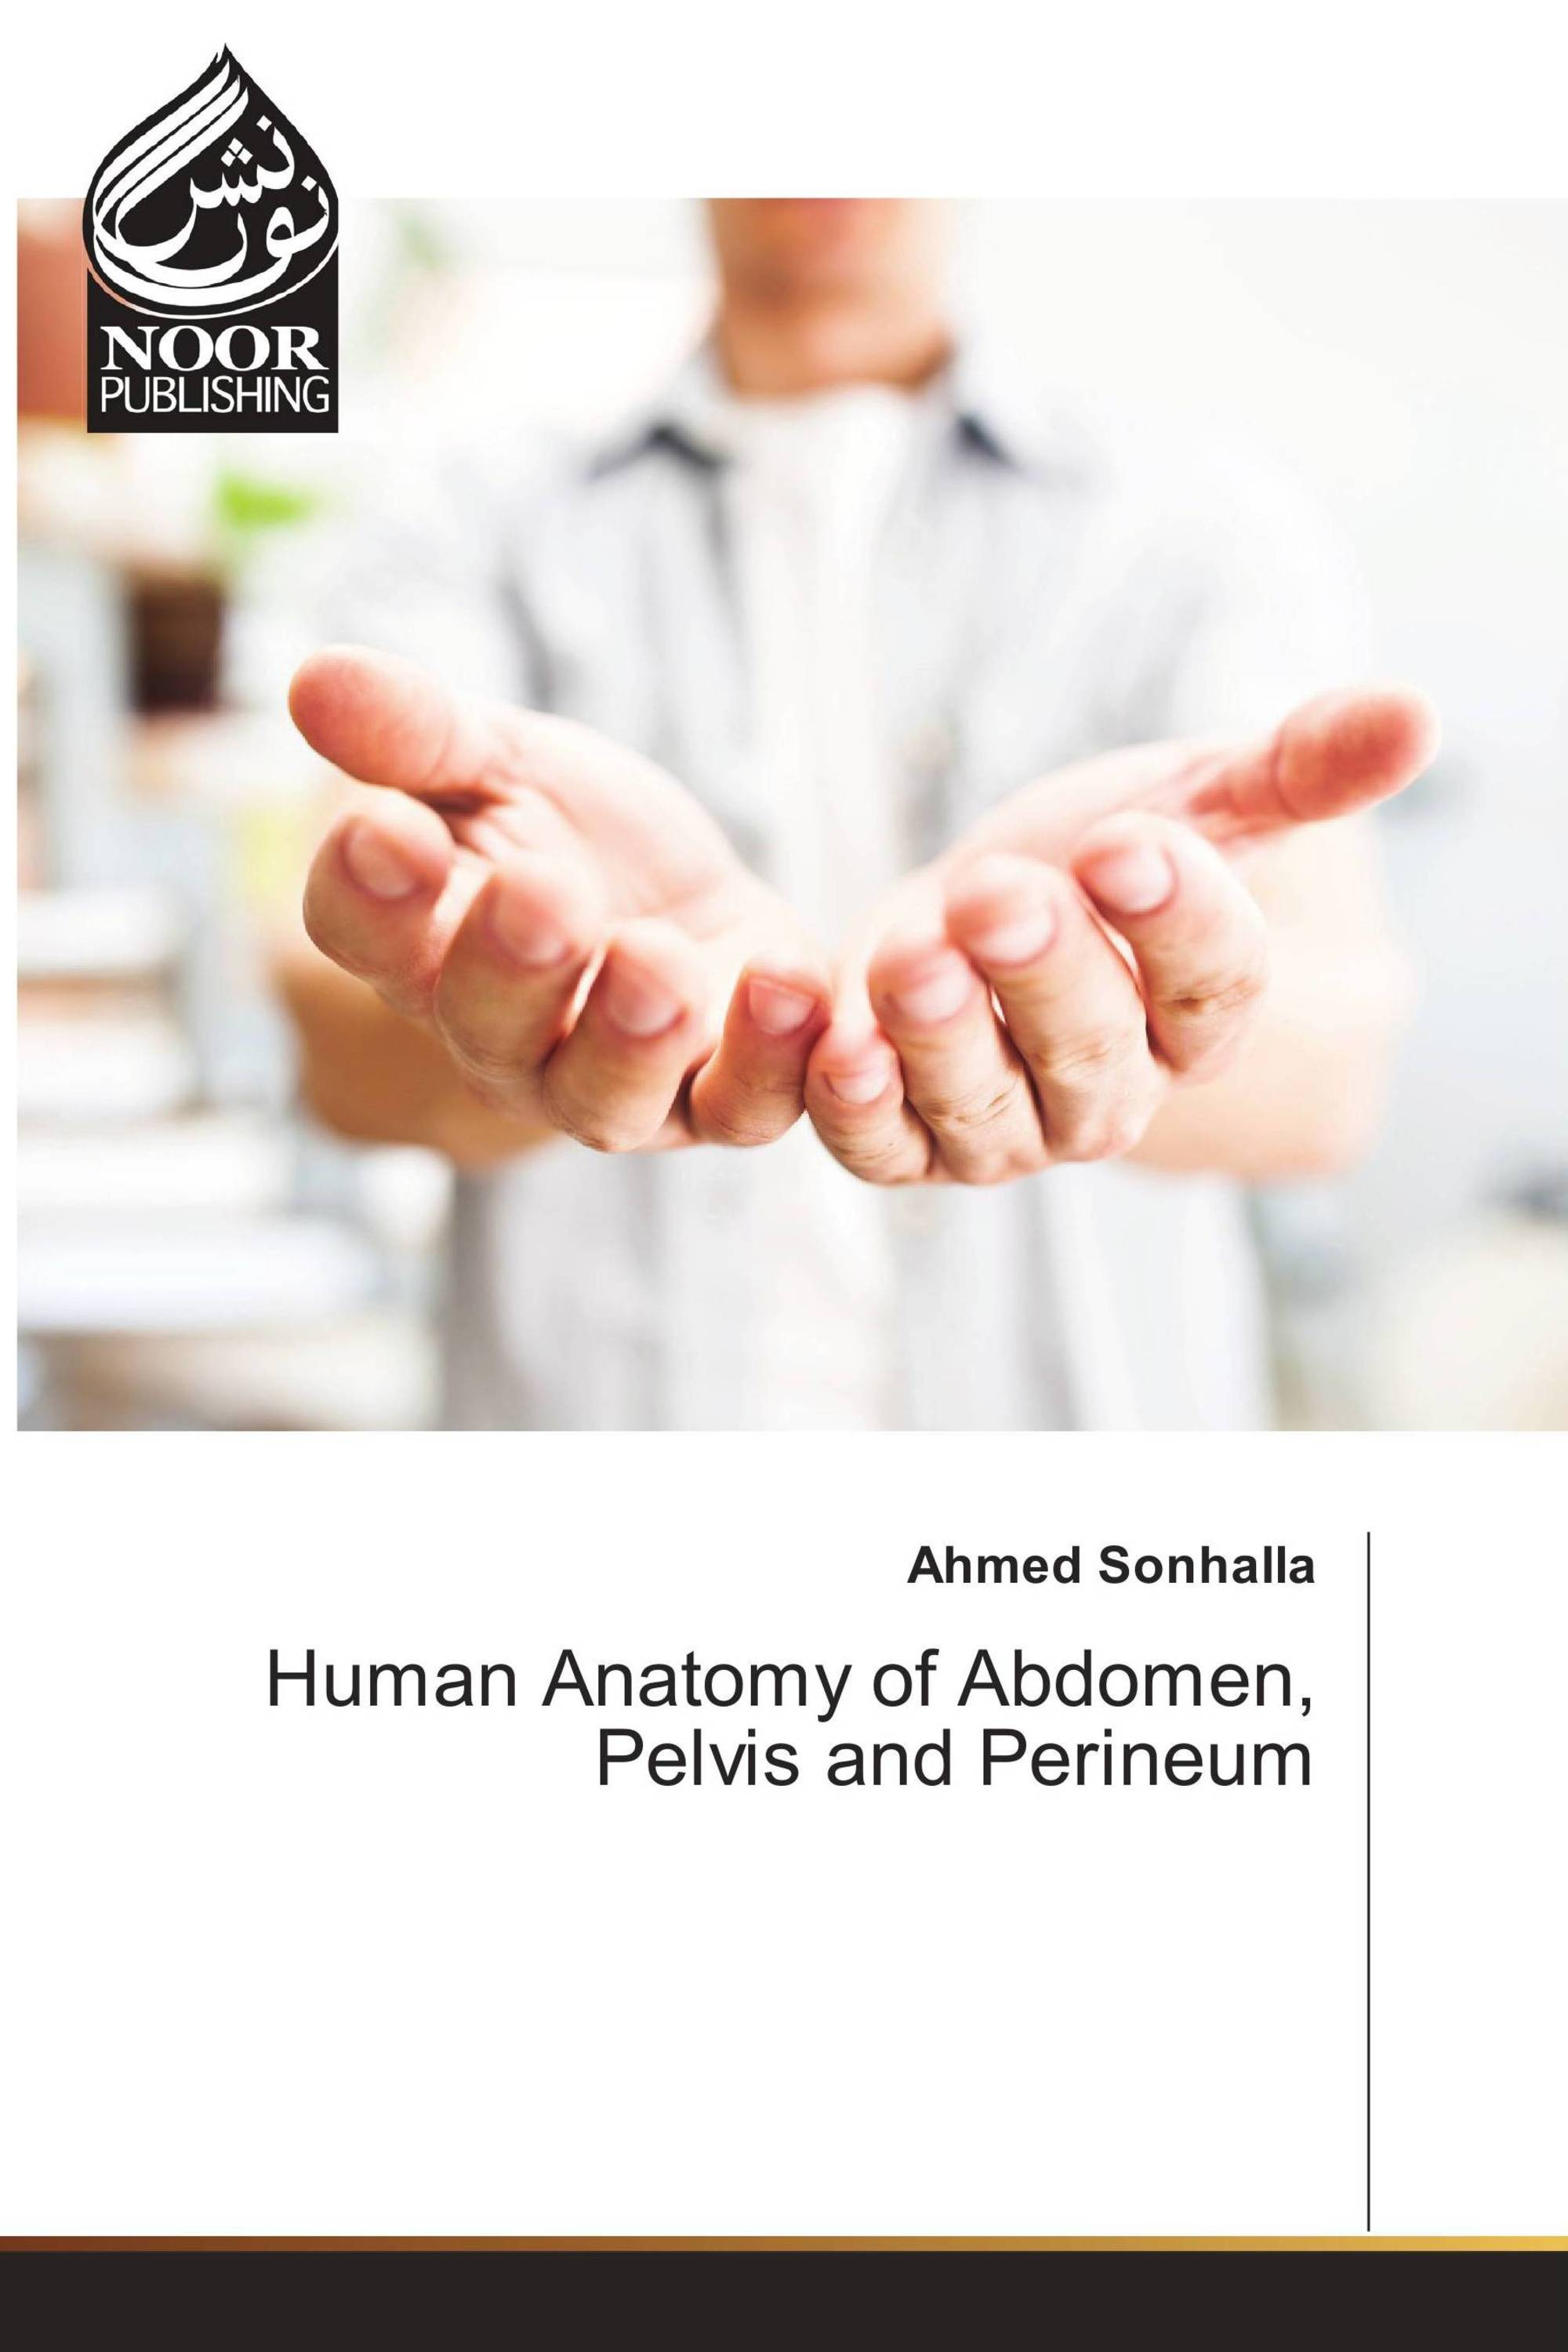 Human Anatomy Of Abdomen Pelvis And Perineum 978 620 2 34378 7